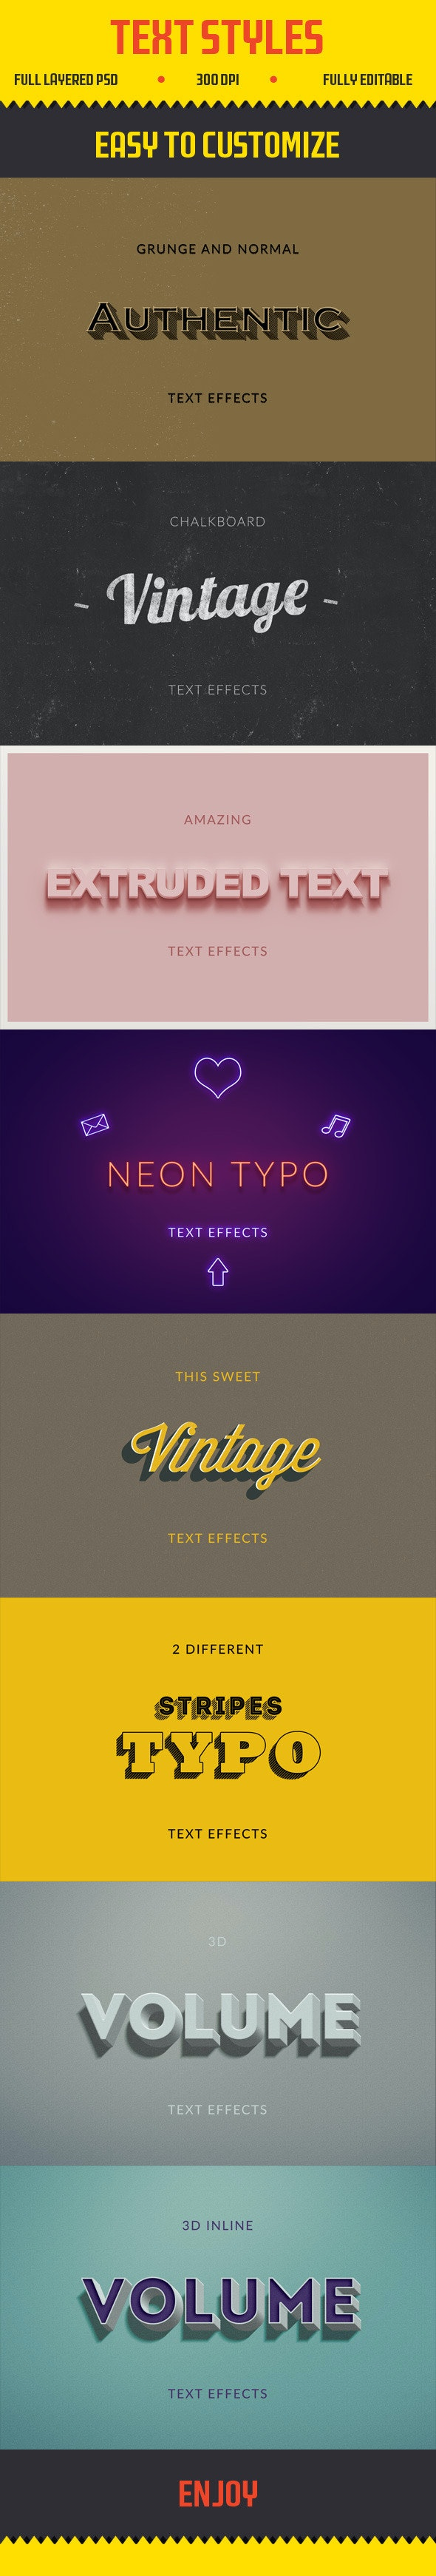 Text Effects | Vintage | 3D | Retro - Photoshop Add-ons